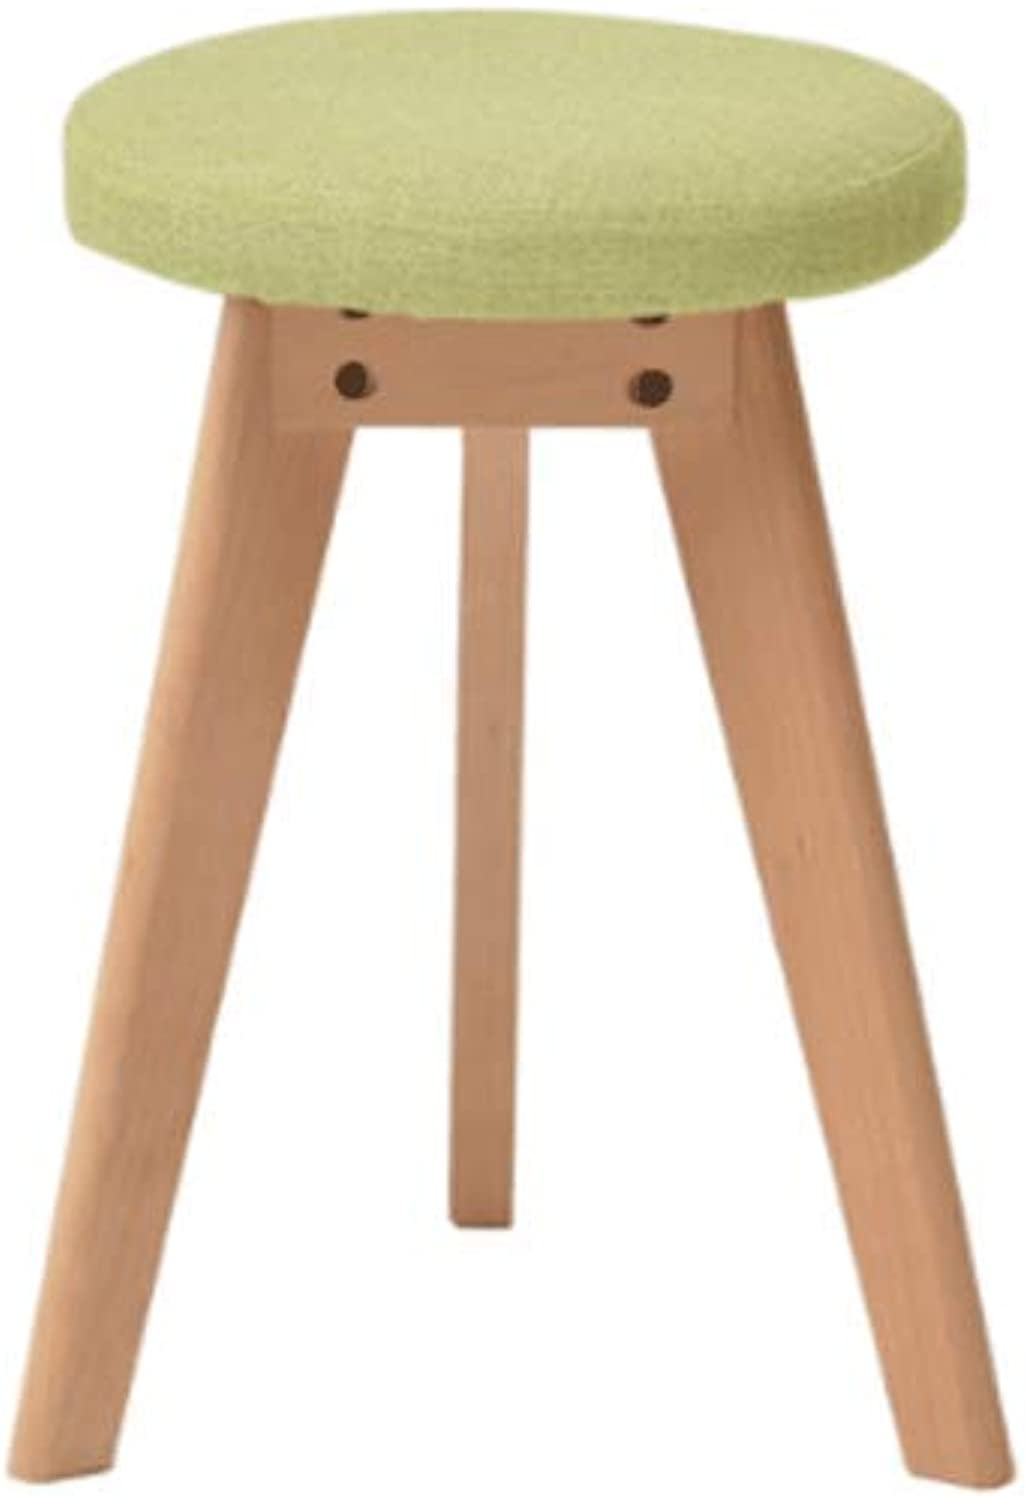 Fashion Creative Wooden Bench Green Small Bench Home Dining Table Stool